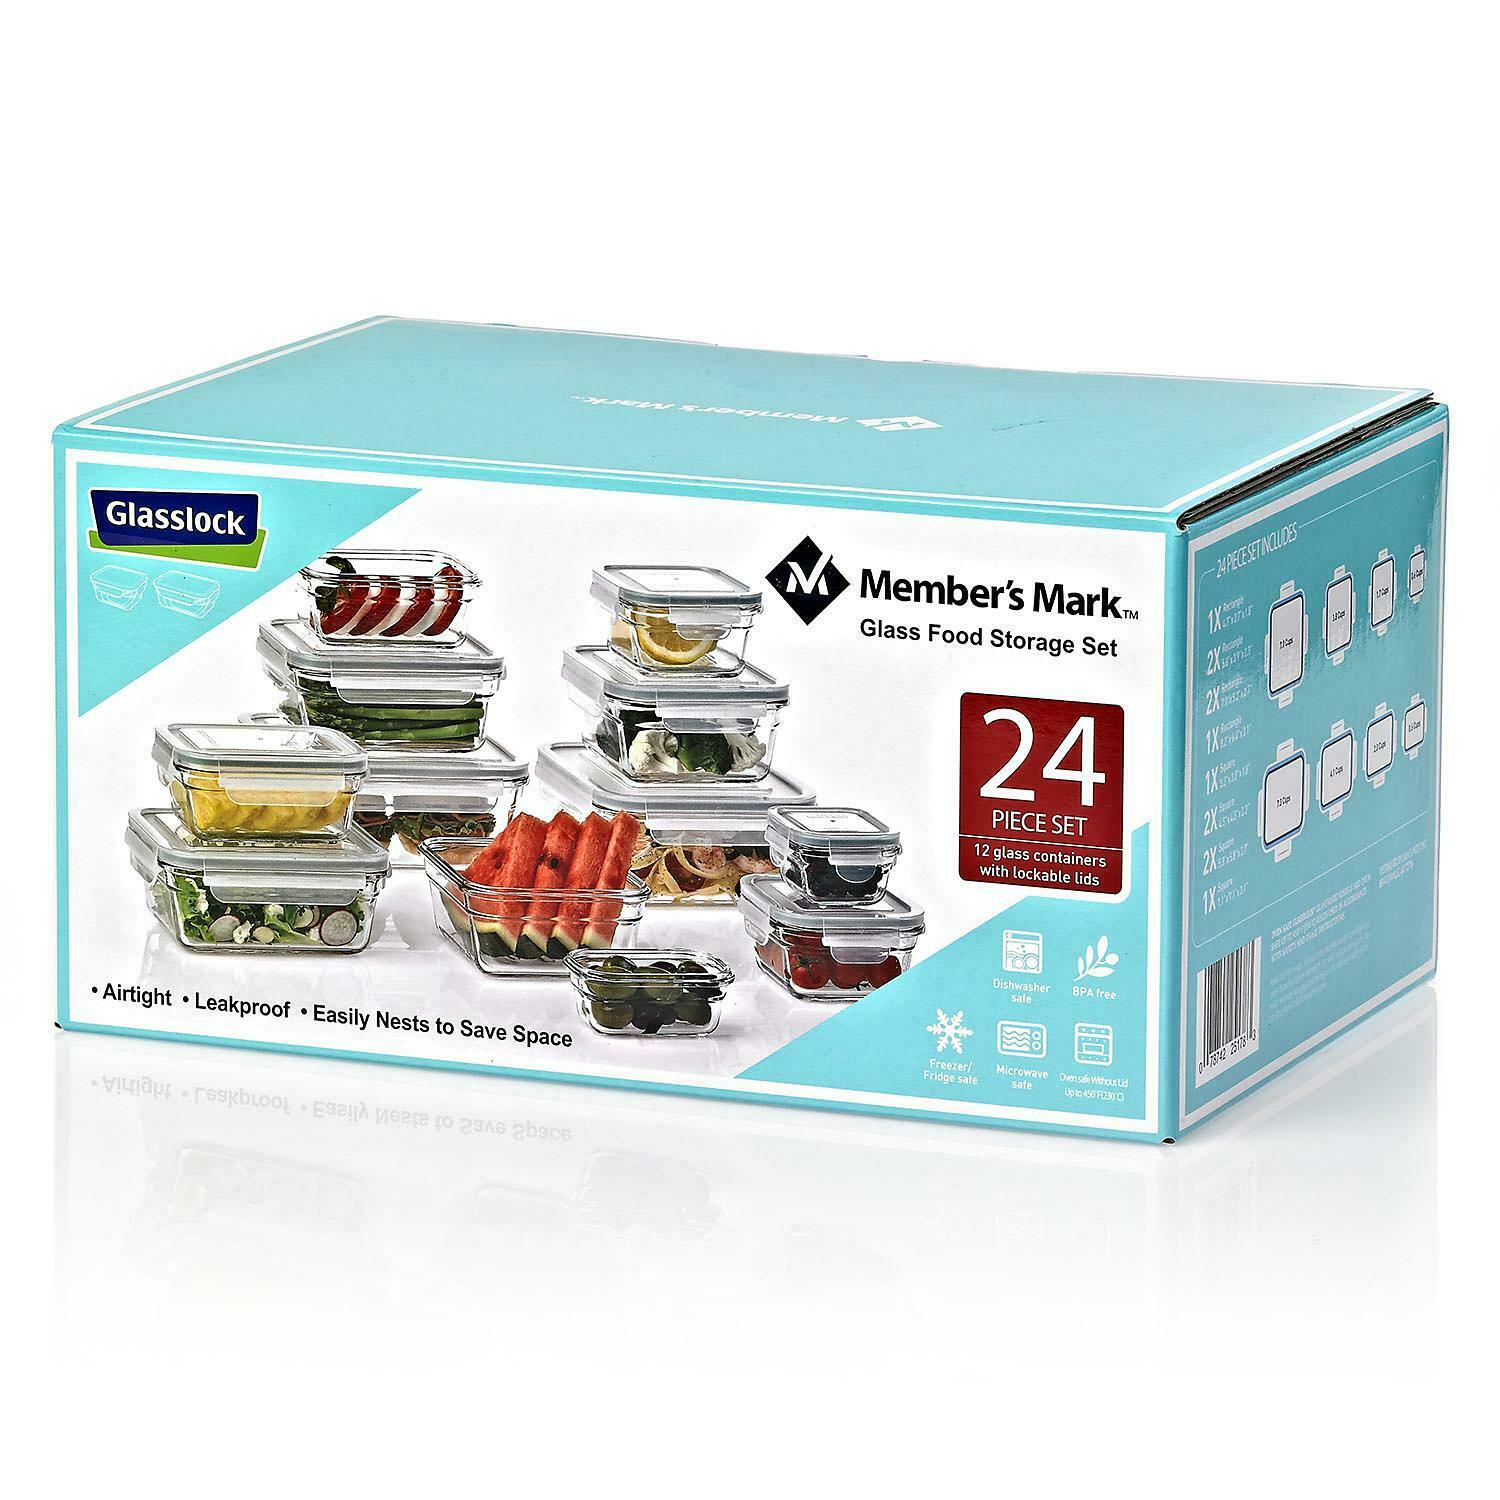 Member's Mark 24-Piece Glass Food Storage Containers Set by Glasslock BPA Free 1